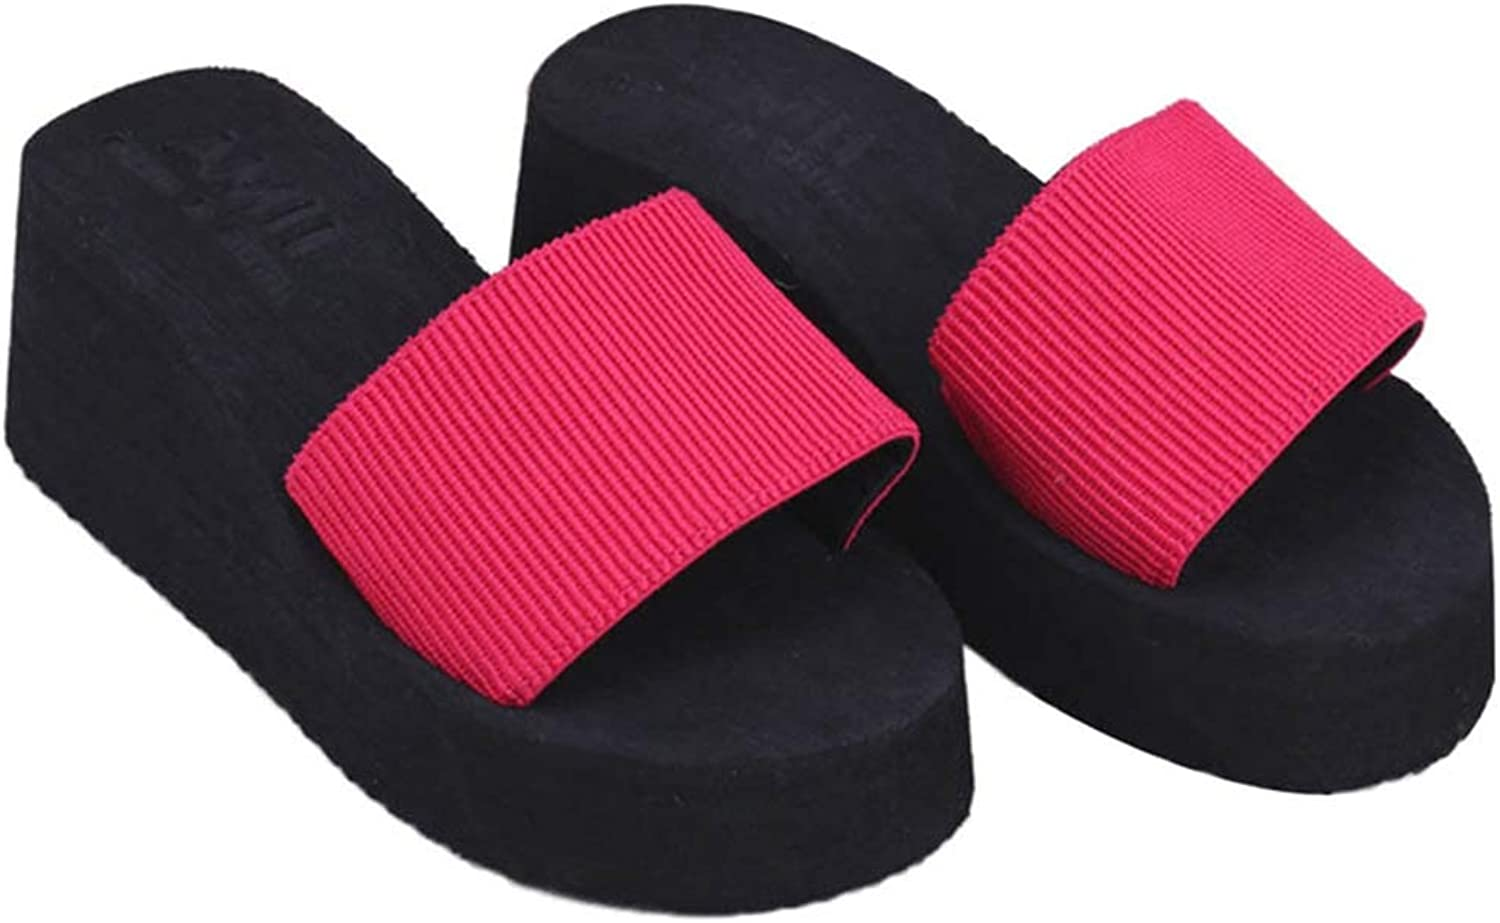 T-JULY Summer Soft Wedge Flip Flops Flat Platform Slippers Ladies Beach Sandals